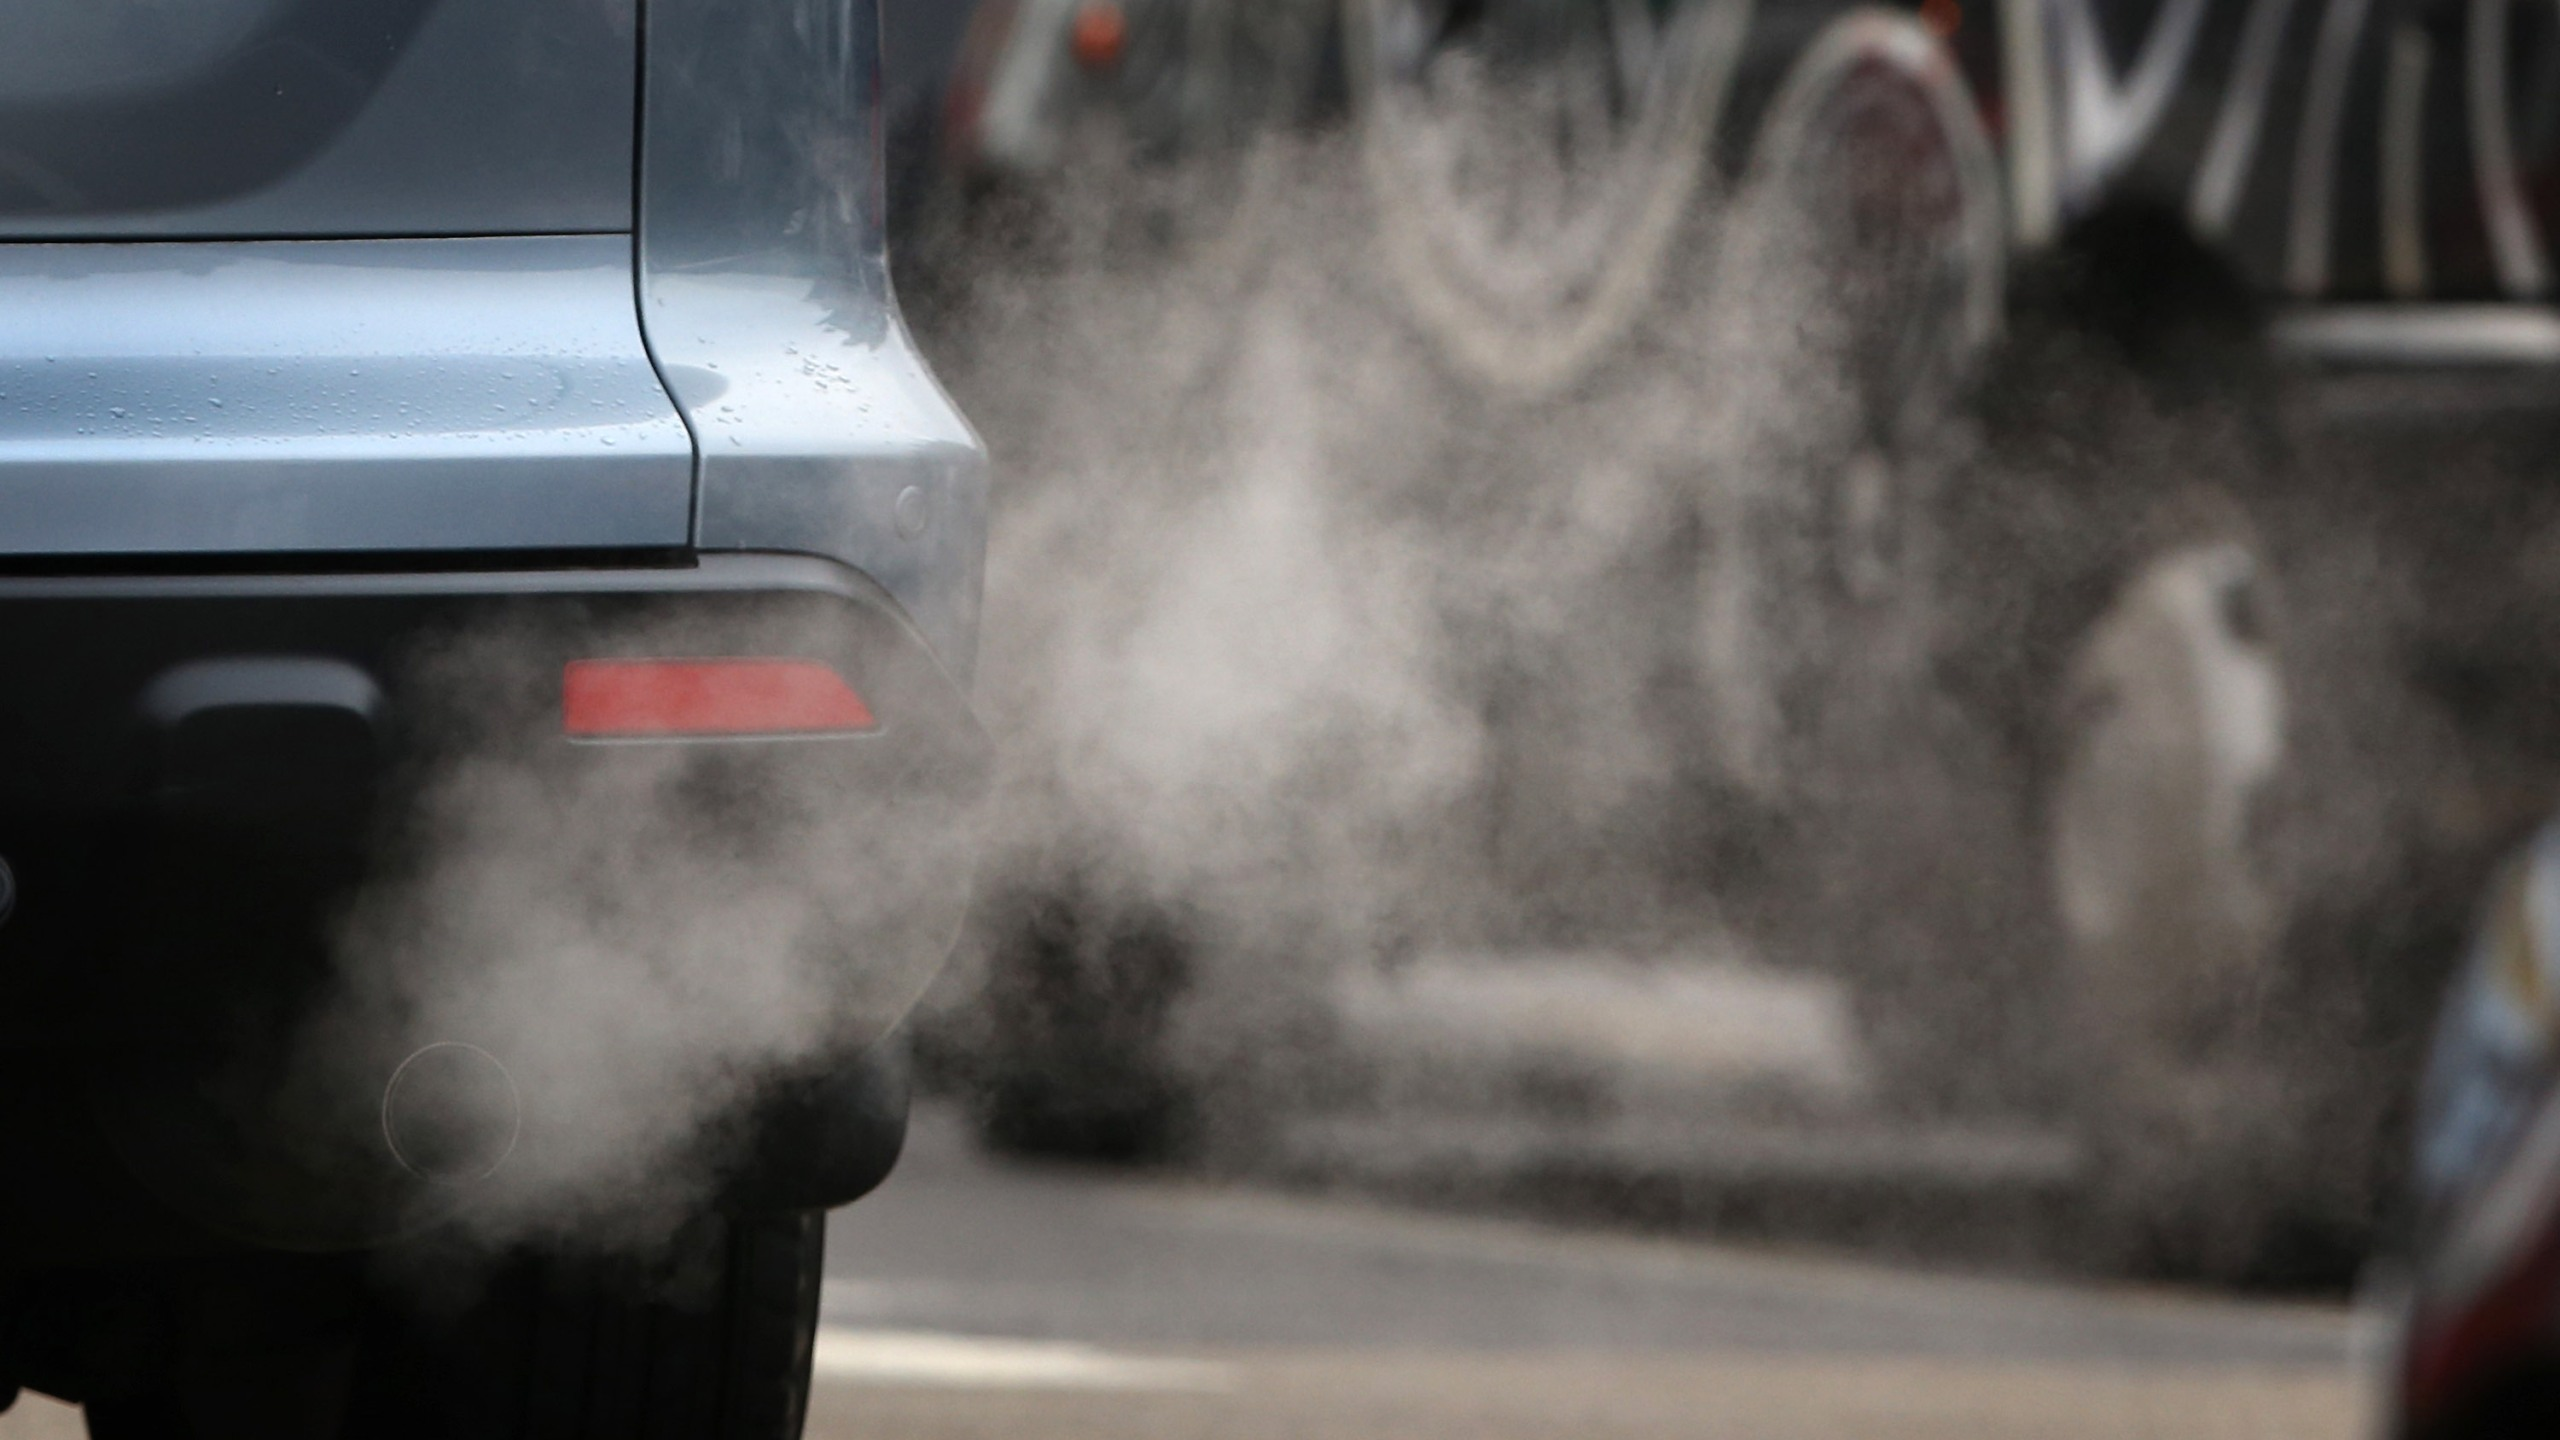 Exhaust fumes from a car in Putney High Street on January 10, 2013 in Putney, England. (Credit: Peter Macdiarmid/Getty Images)